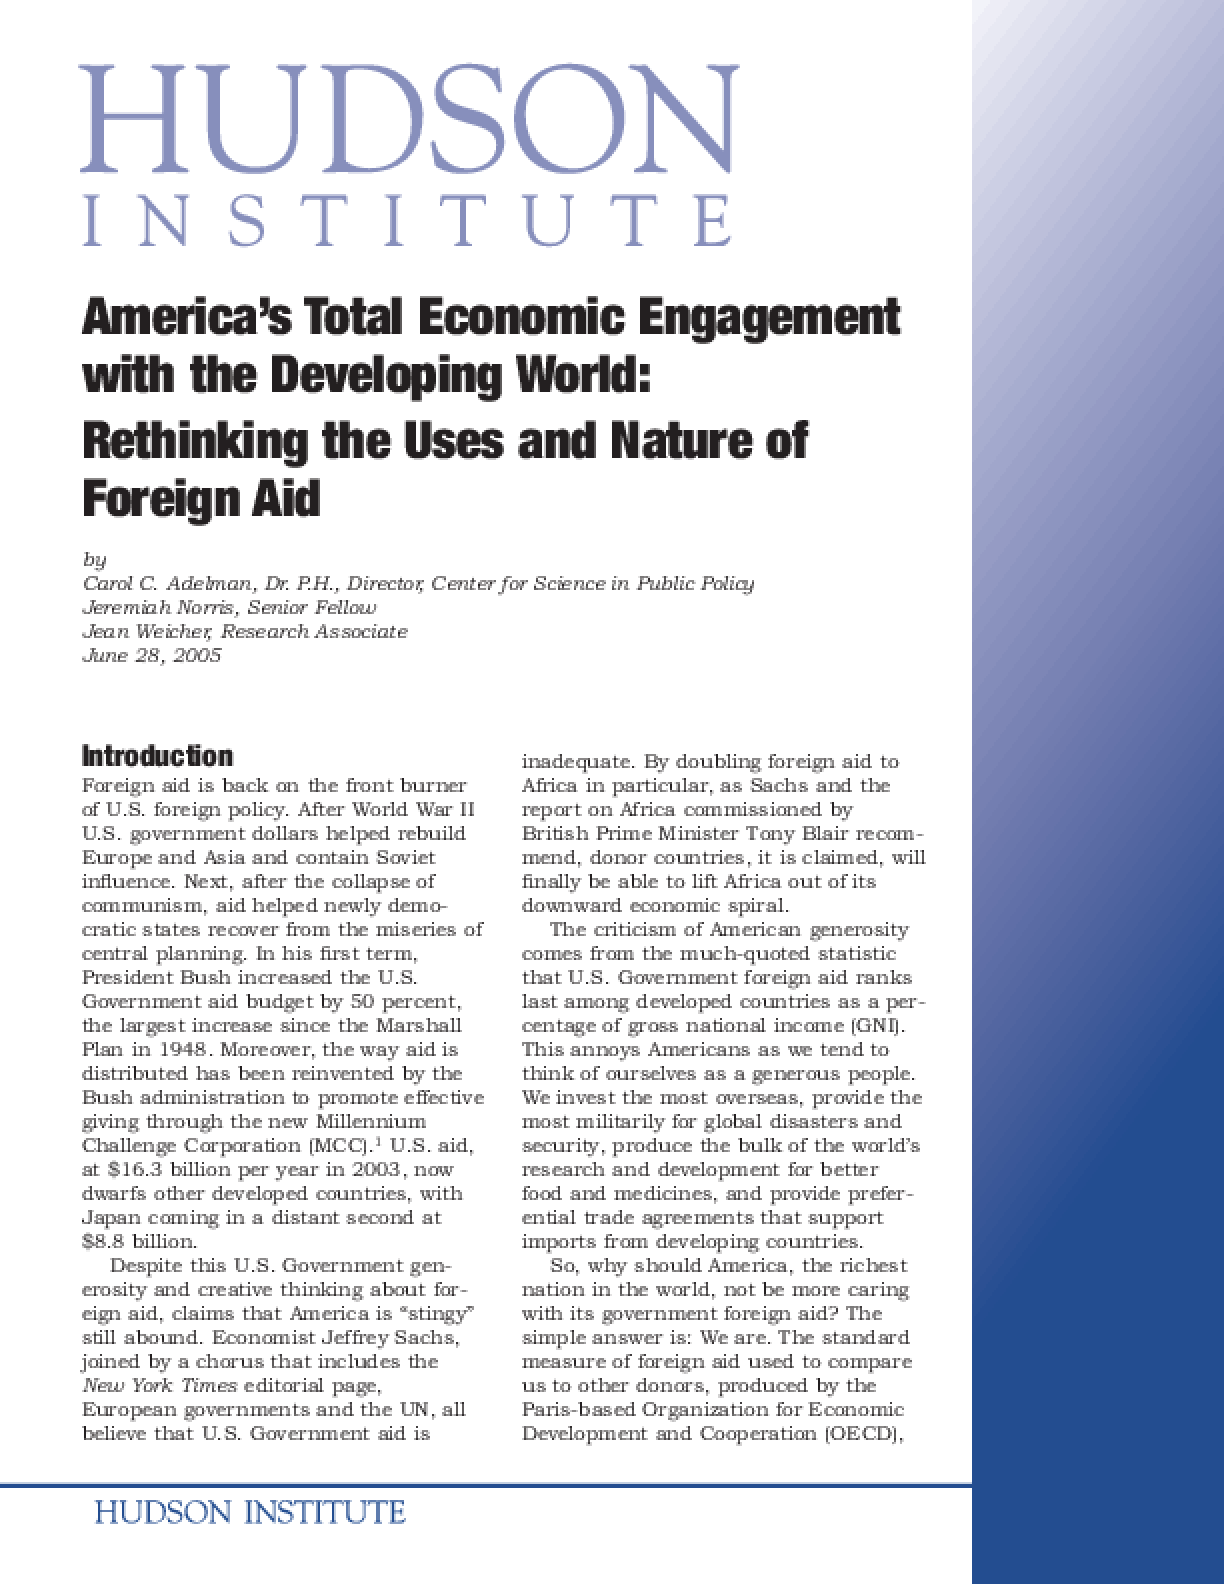 America's Total Economic Engagement with the Developing World: Rethinking the Uses and Nature of Foreign Aid.